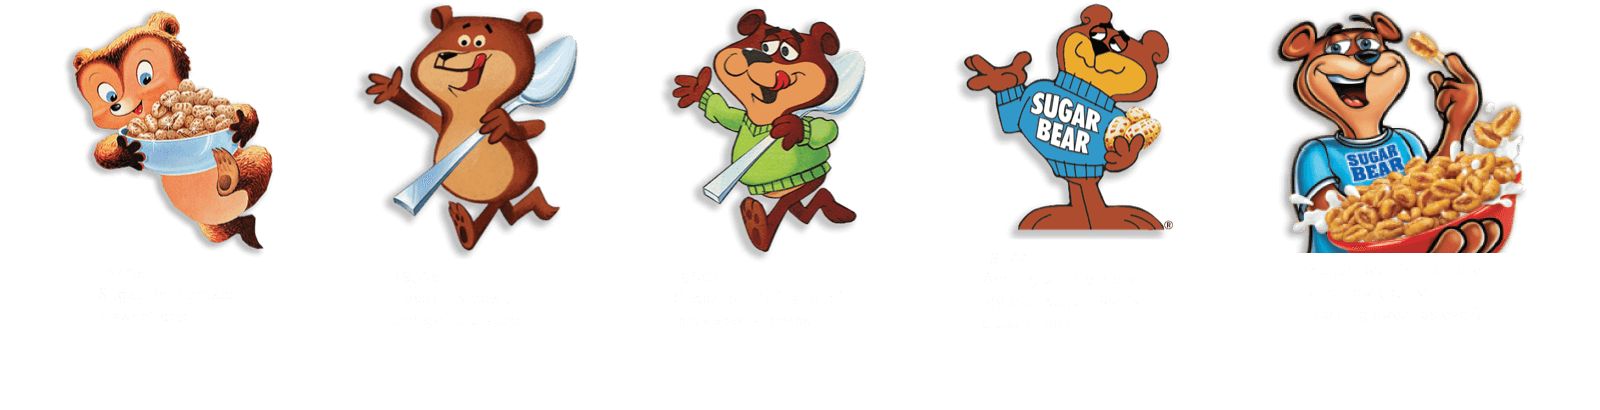 Timeline displaying progression of Sugar Bear character